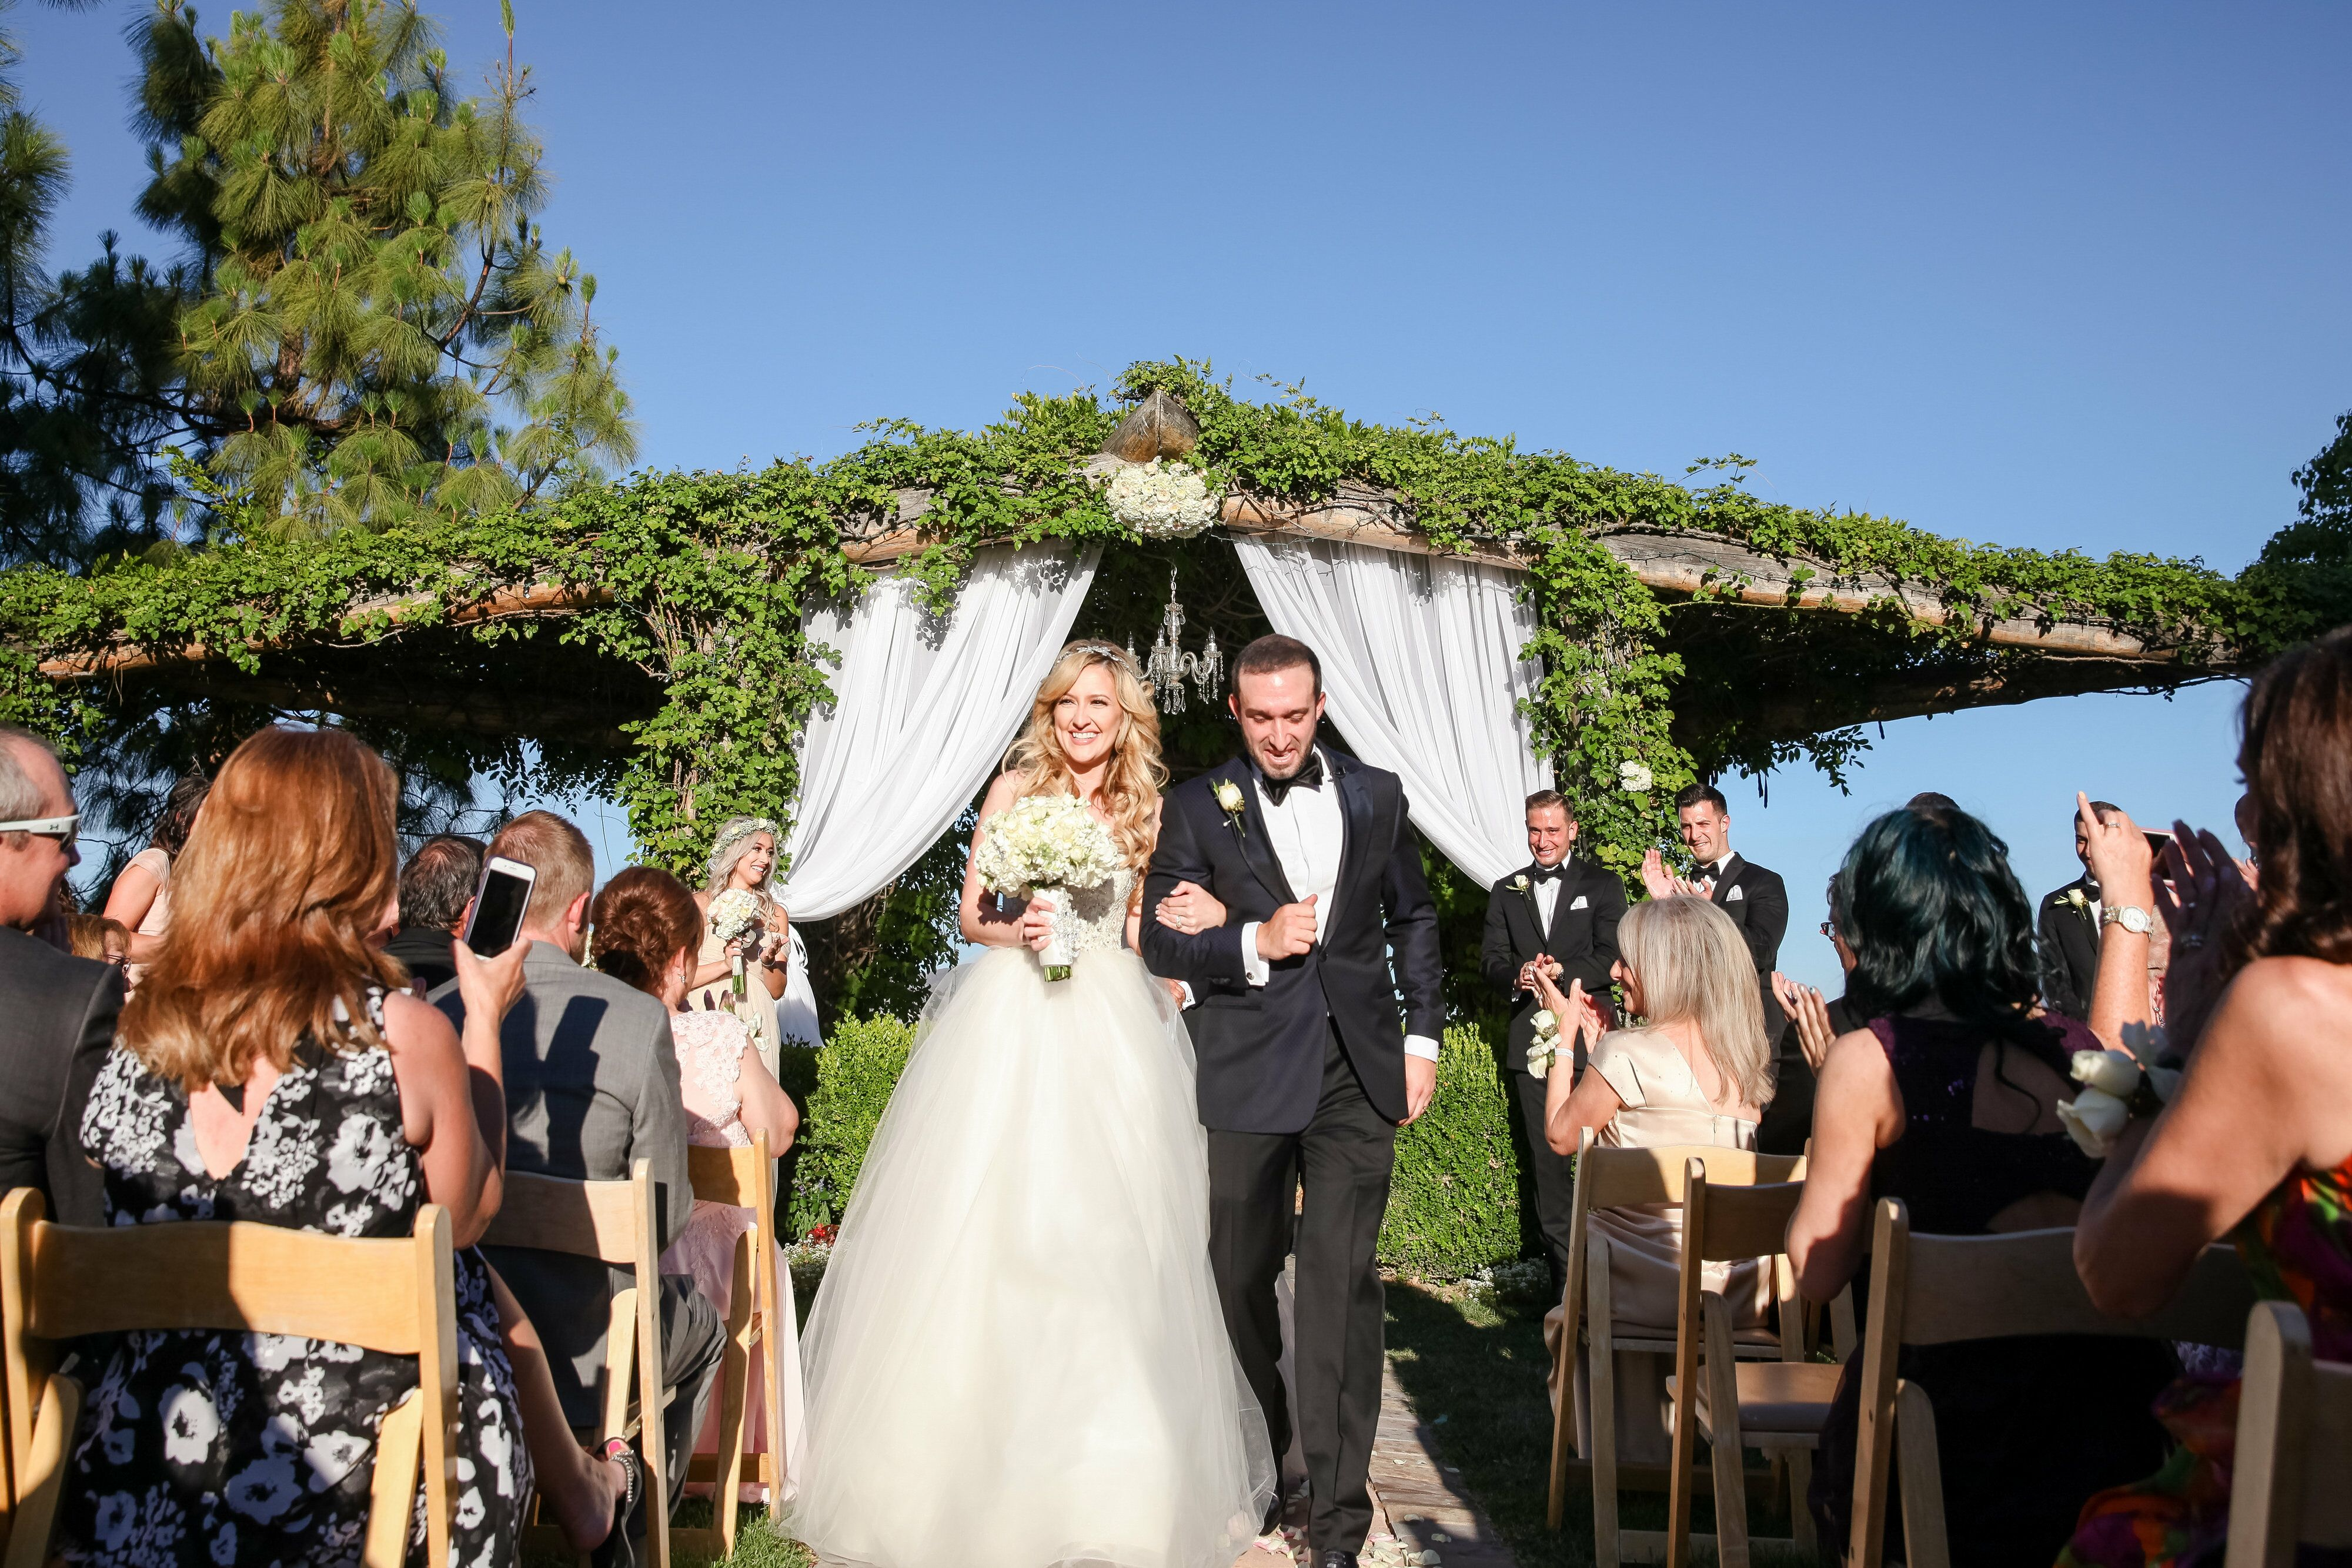 Wedding reception venues in temecula ca the knot south coast winery resort spa junglespirit Choice Image